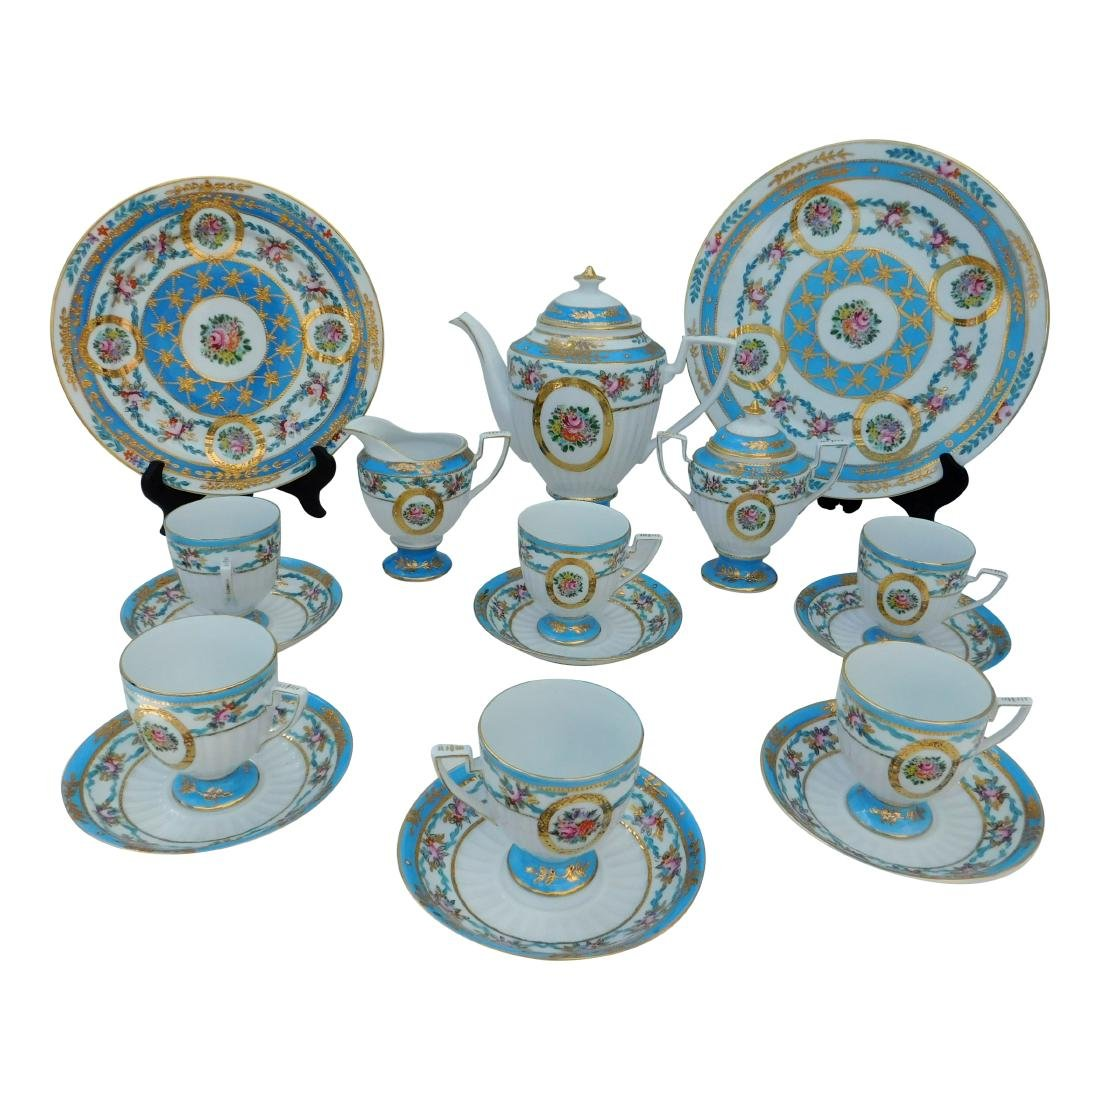 KPM Partial Coffee and Dessert Service In Turquois